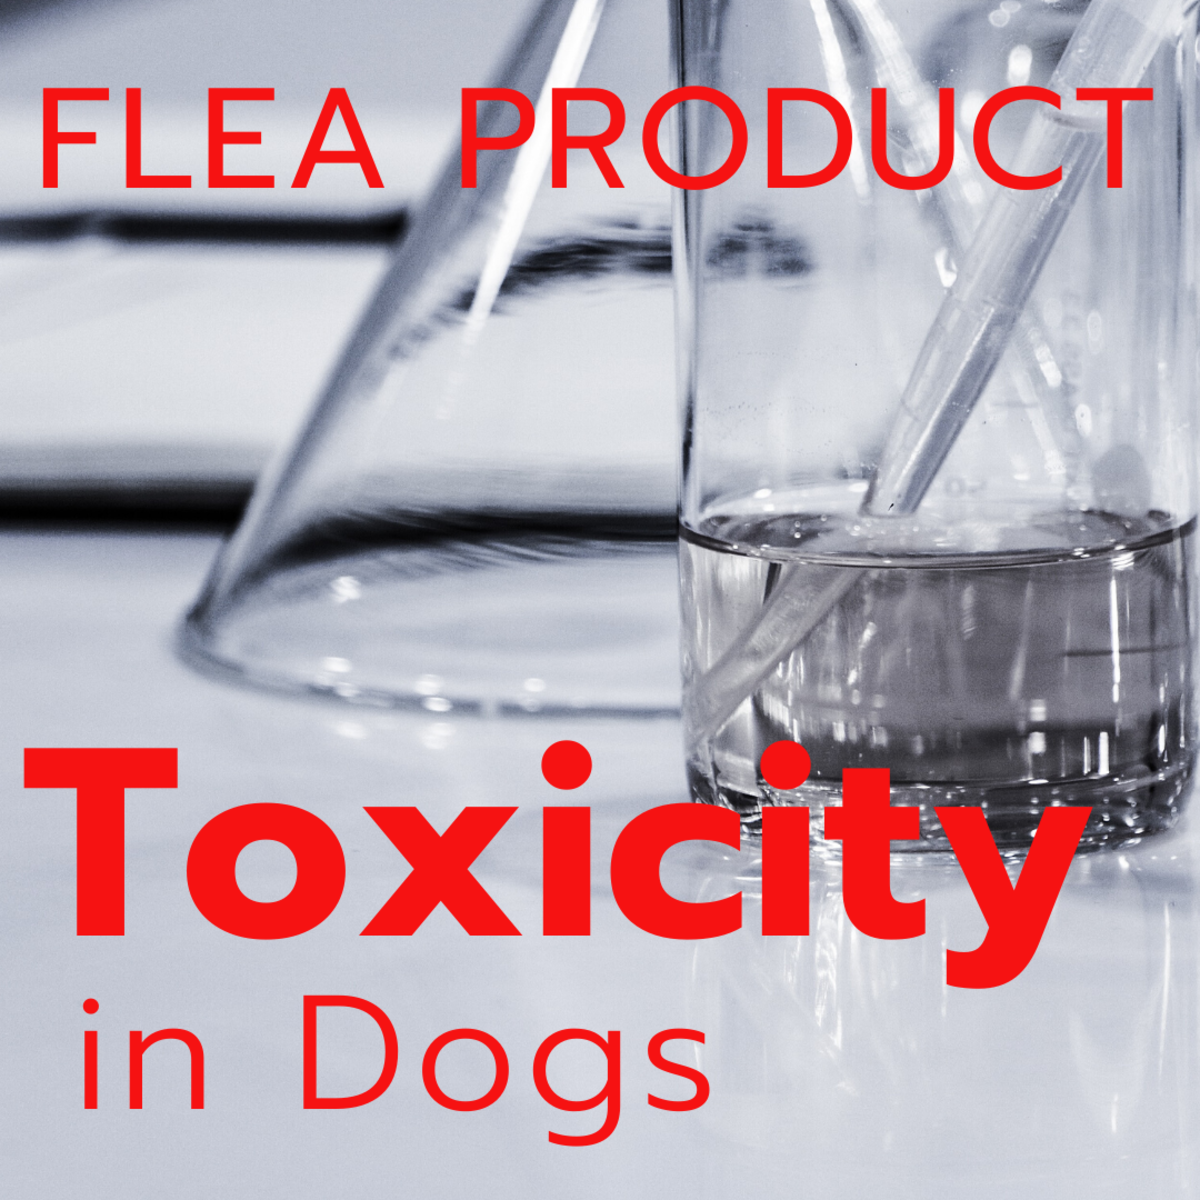 Warnings About Flea Product Toxicity in Dogs